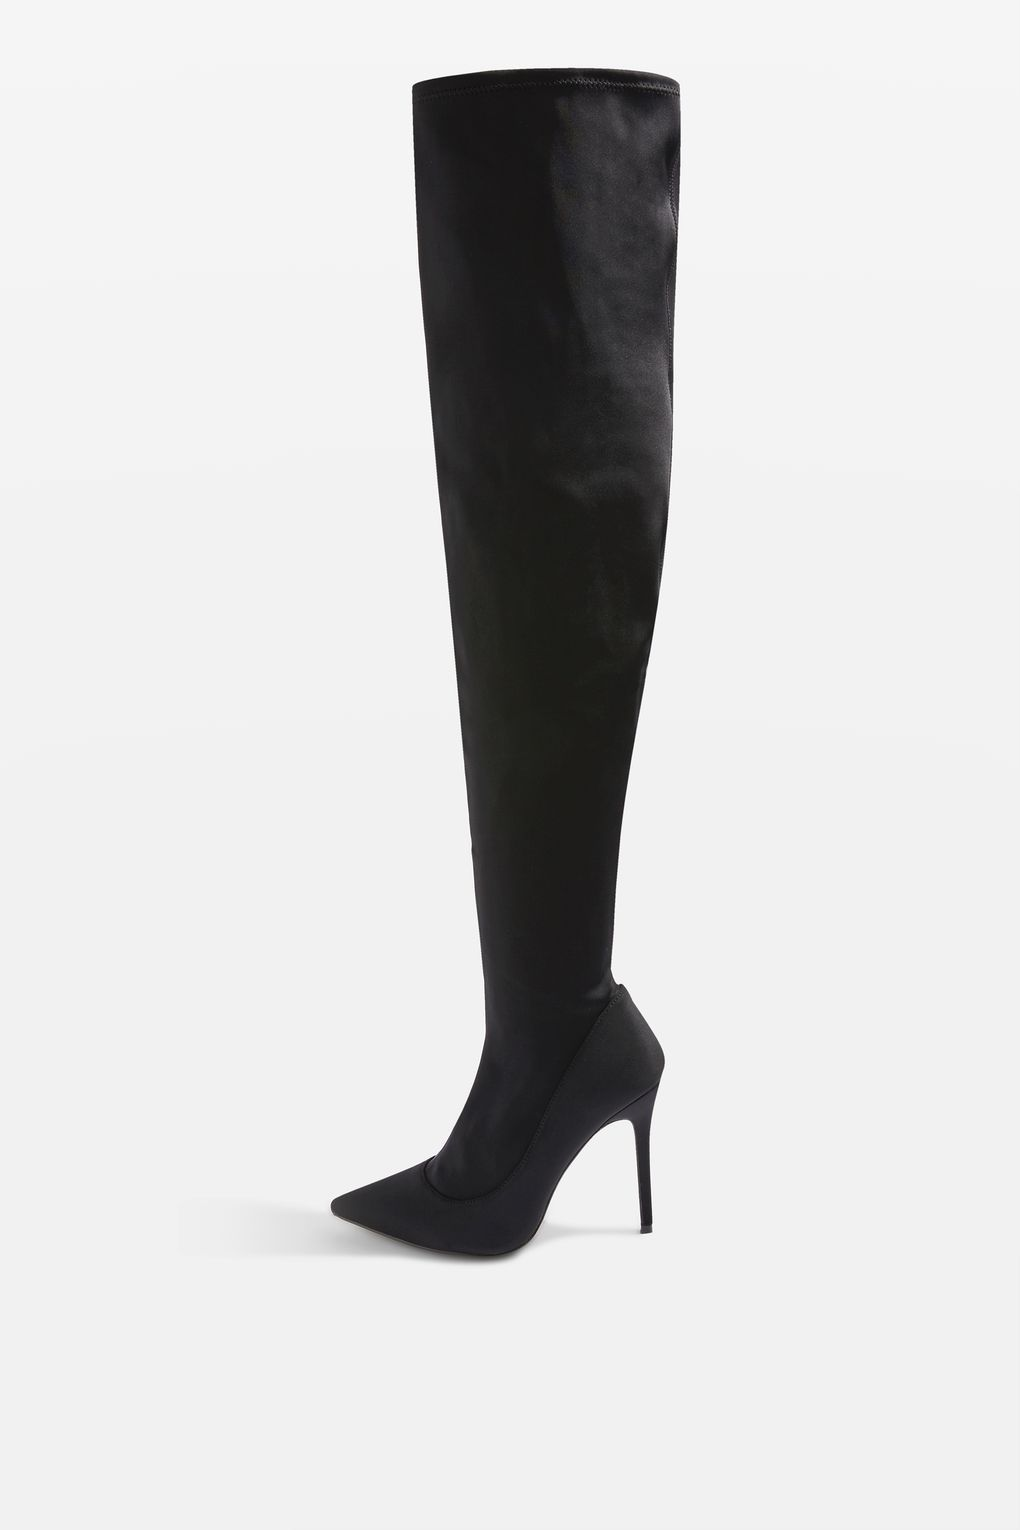 48e6817be5f Topshop BELLINI Stretch Boots How To Stretch Boots